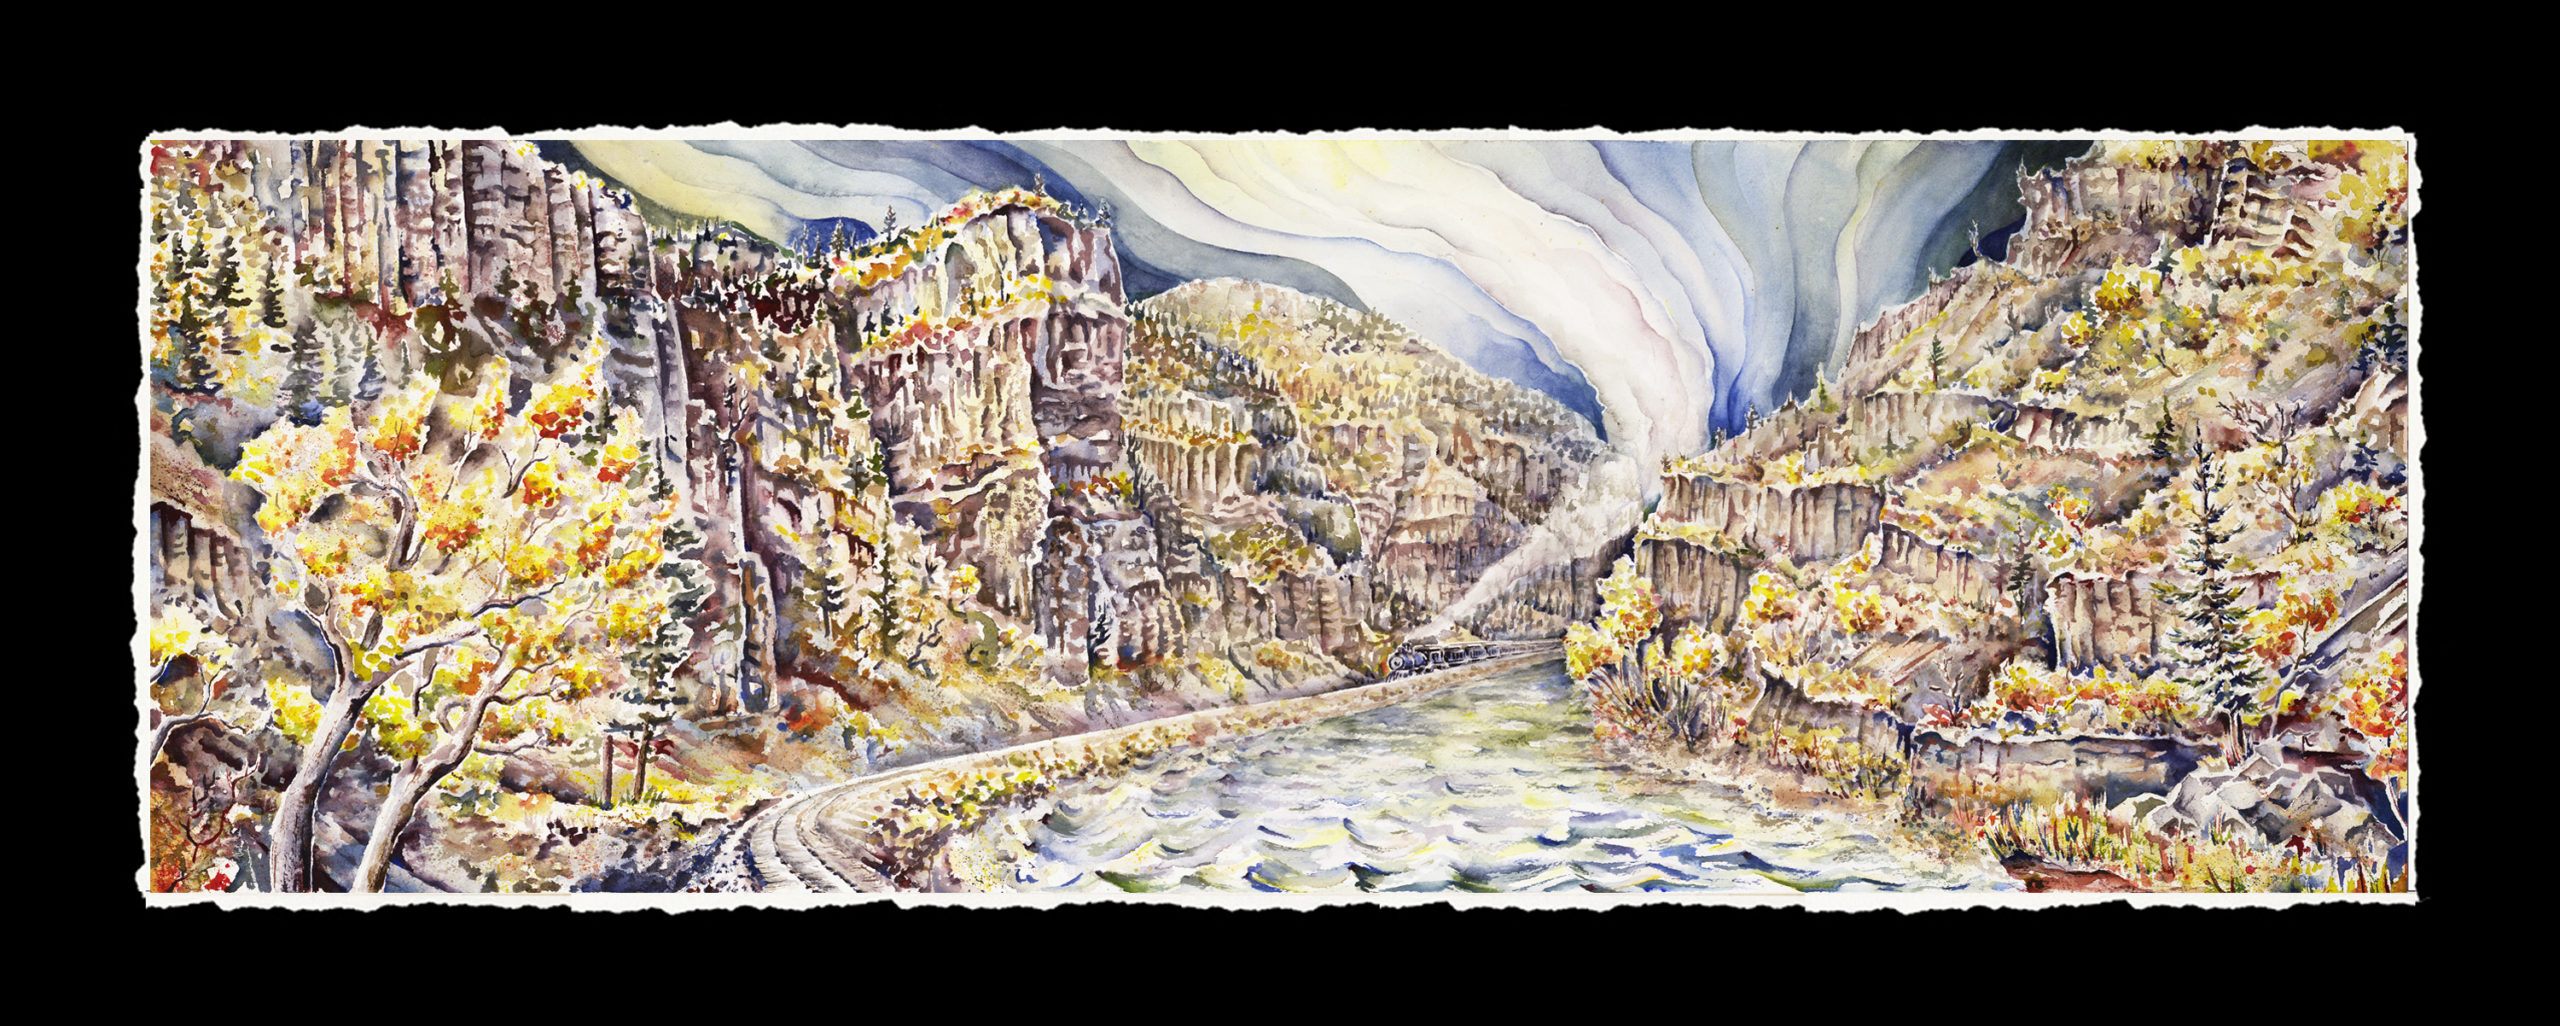 Glenwood Canyon at 1900